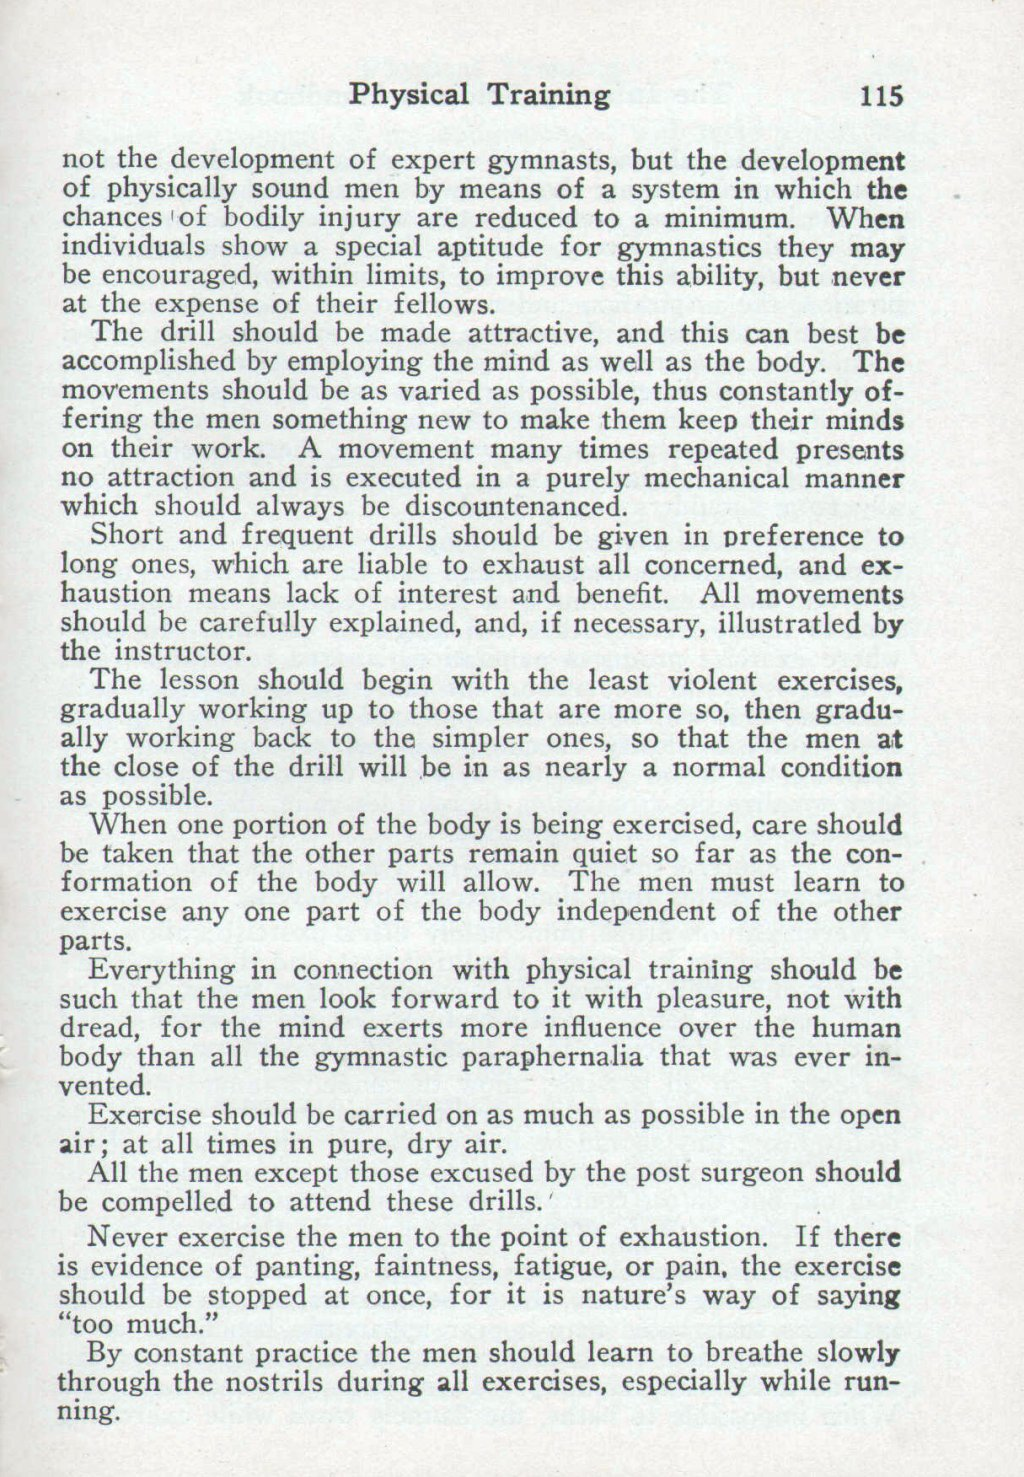 314th Infantry Regiment - Infantry Soldiers Handbook - Waldron - Page 115